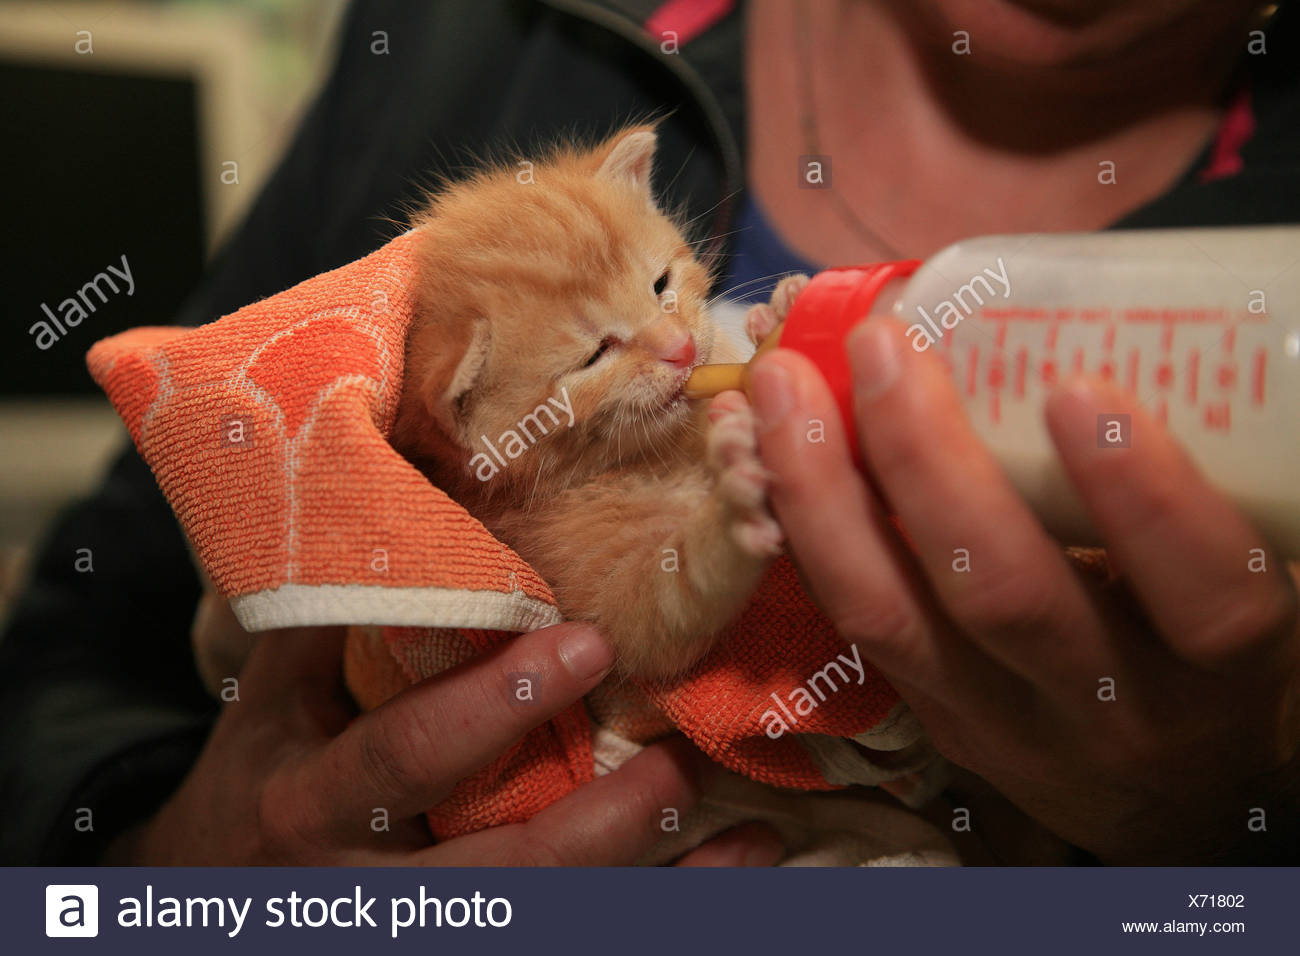 Kitten is being bottle fed - Stock Image